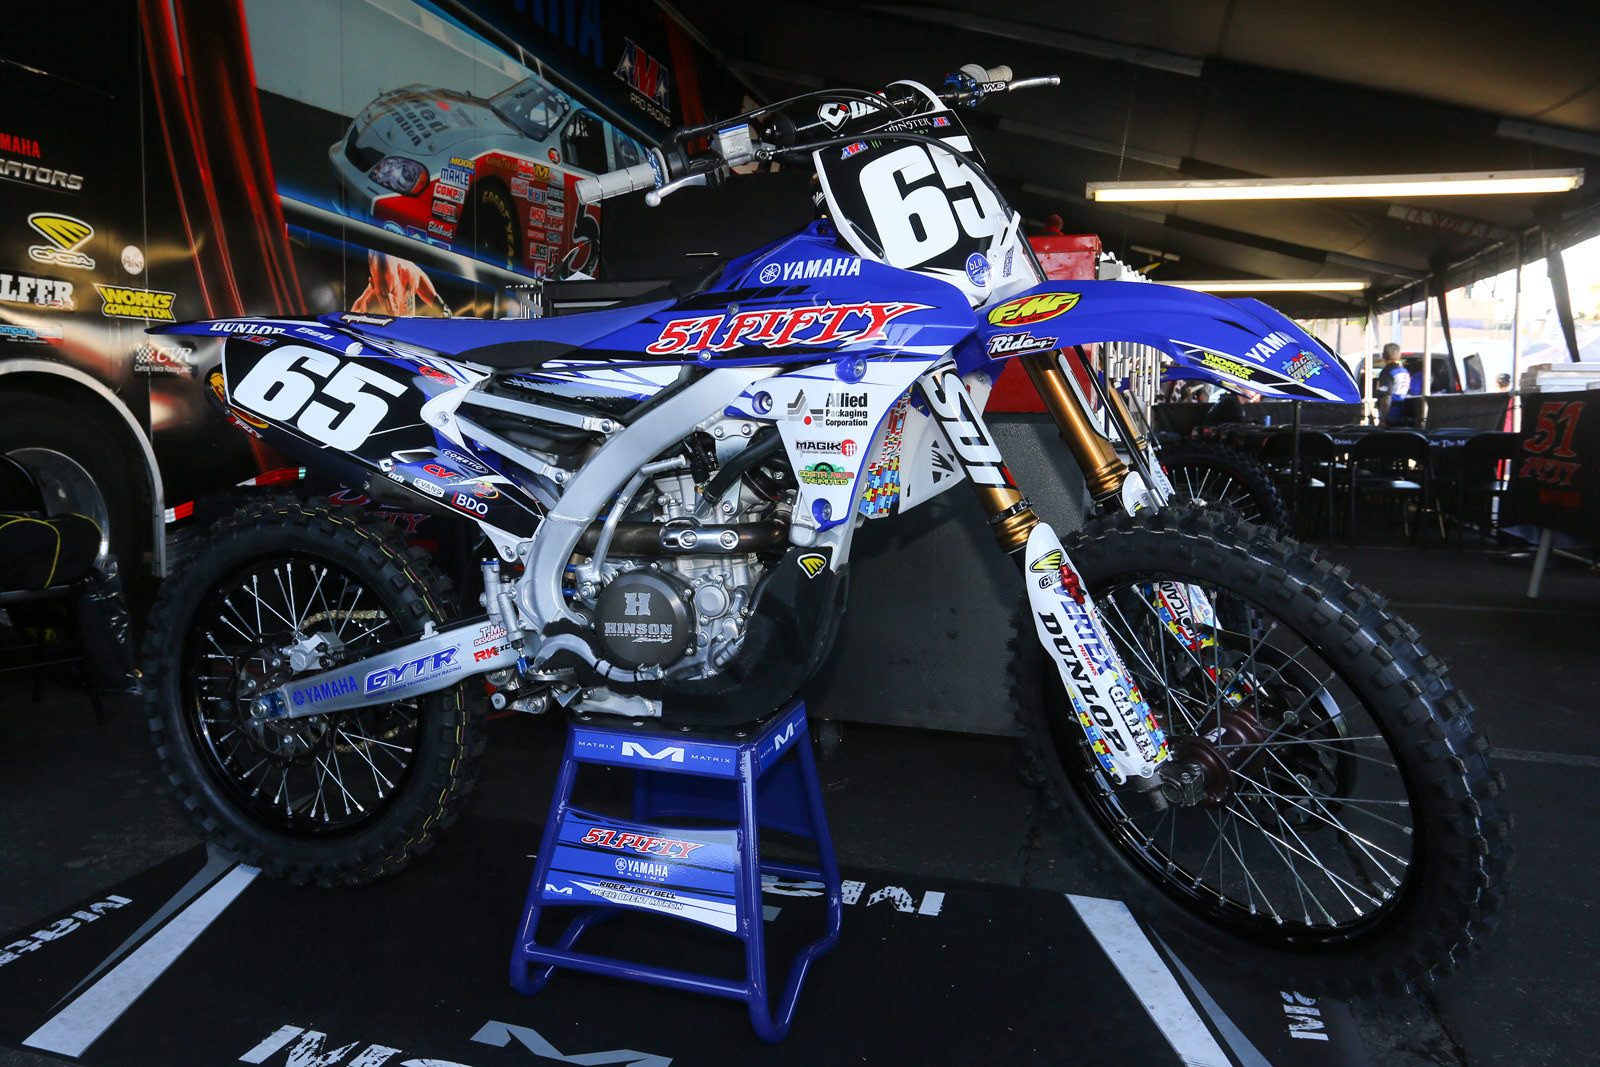 Zach Bell - 2016 Bikes of Supercross - Motocross Pictures - Vital MX